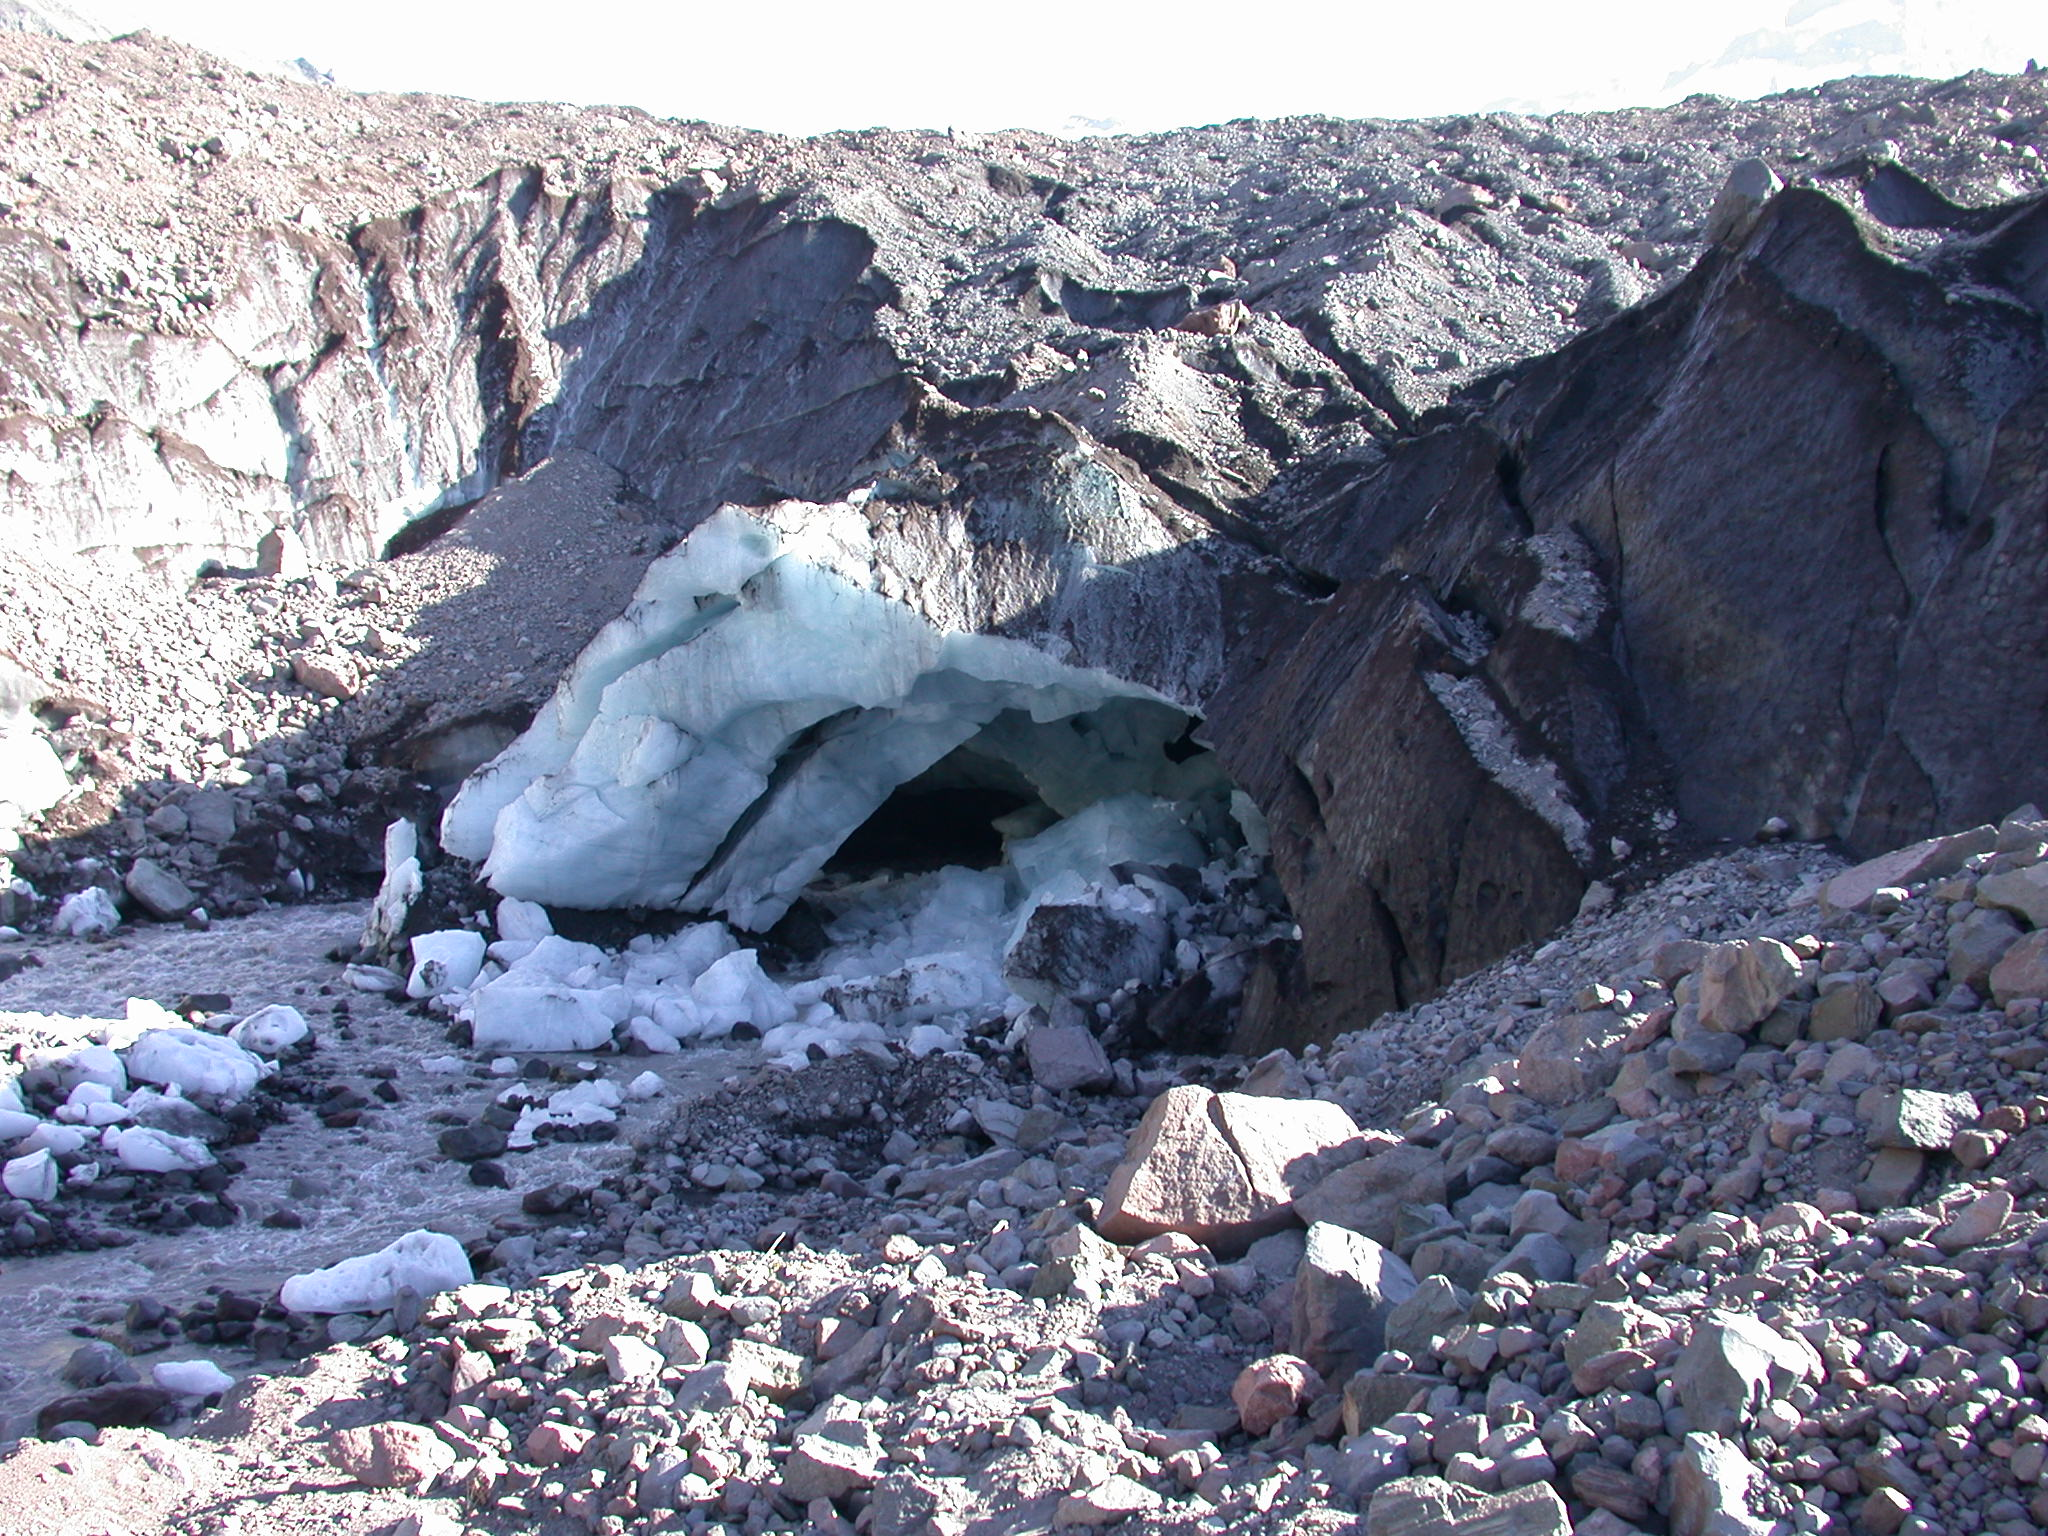 Another View of Further Collapse of Ice Cave at Base of Glacier on Mount Rainier